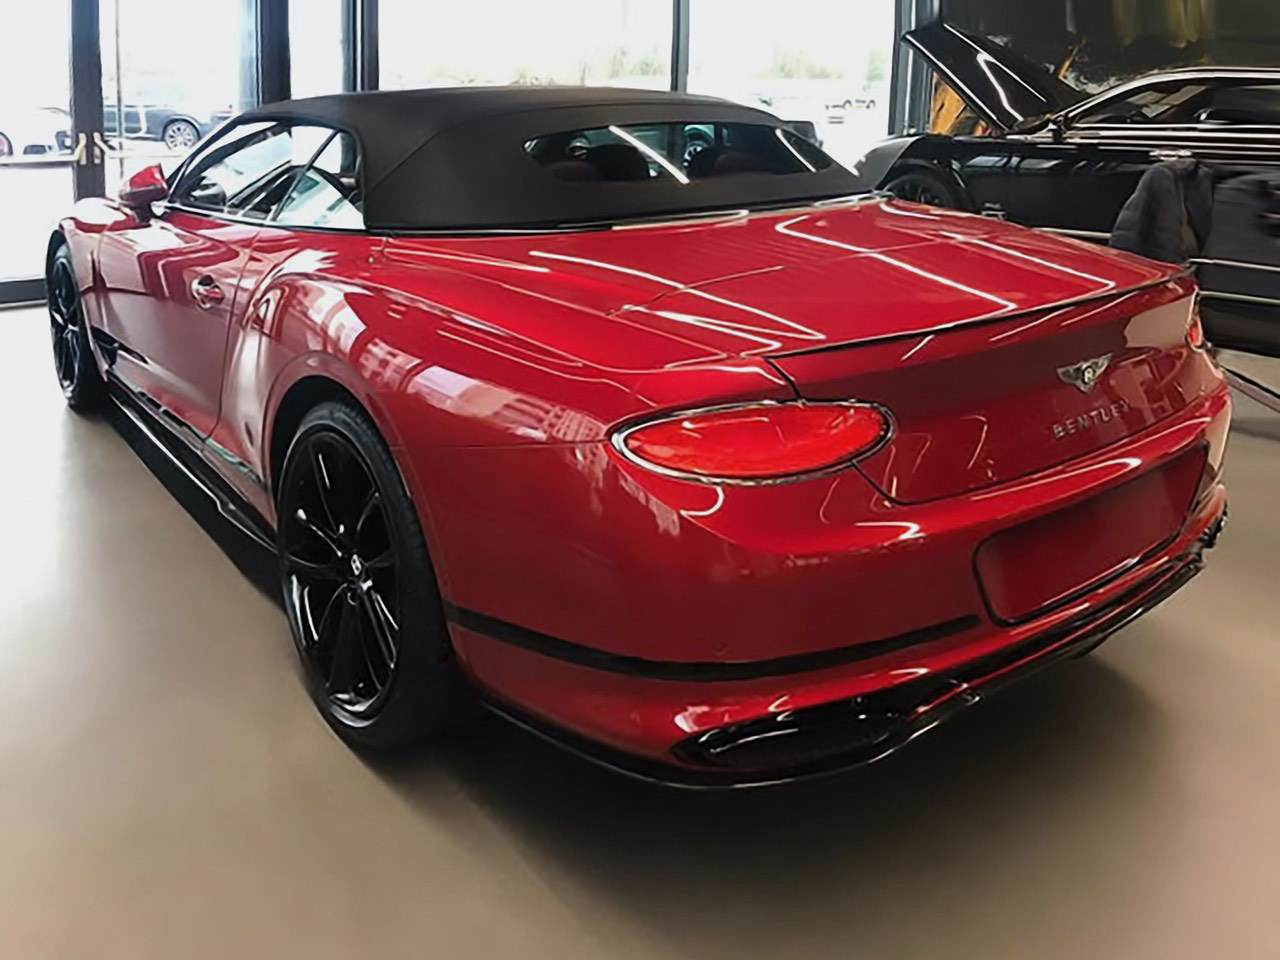 Bentley-Continental-GTC-Dragon-Red-2